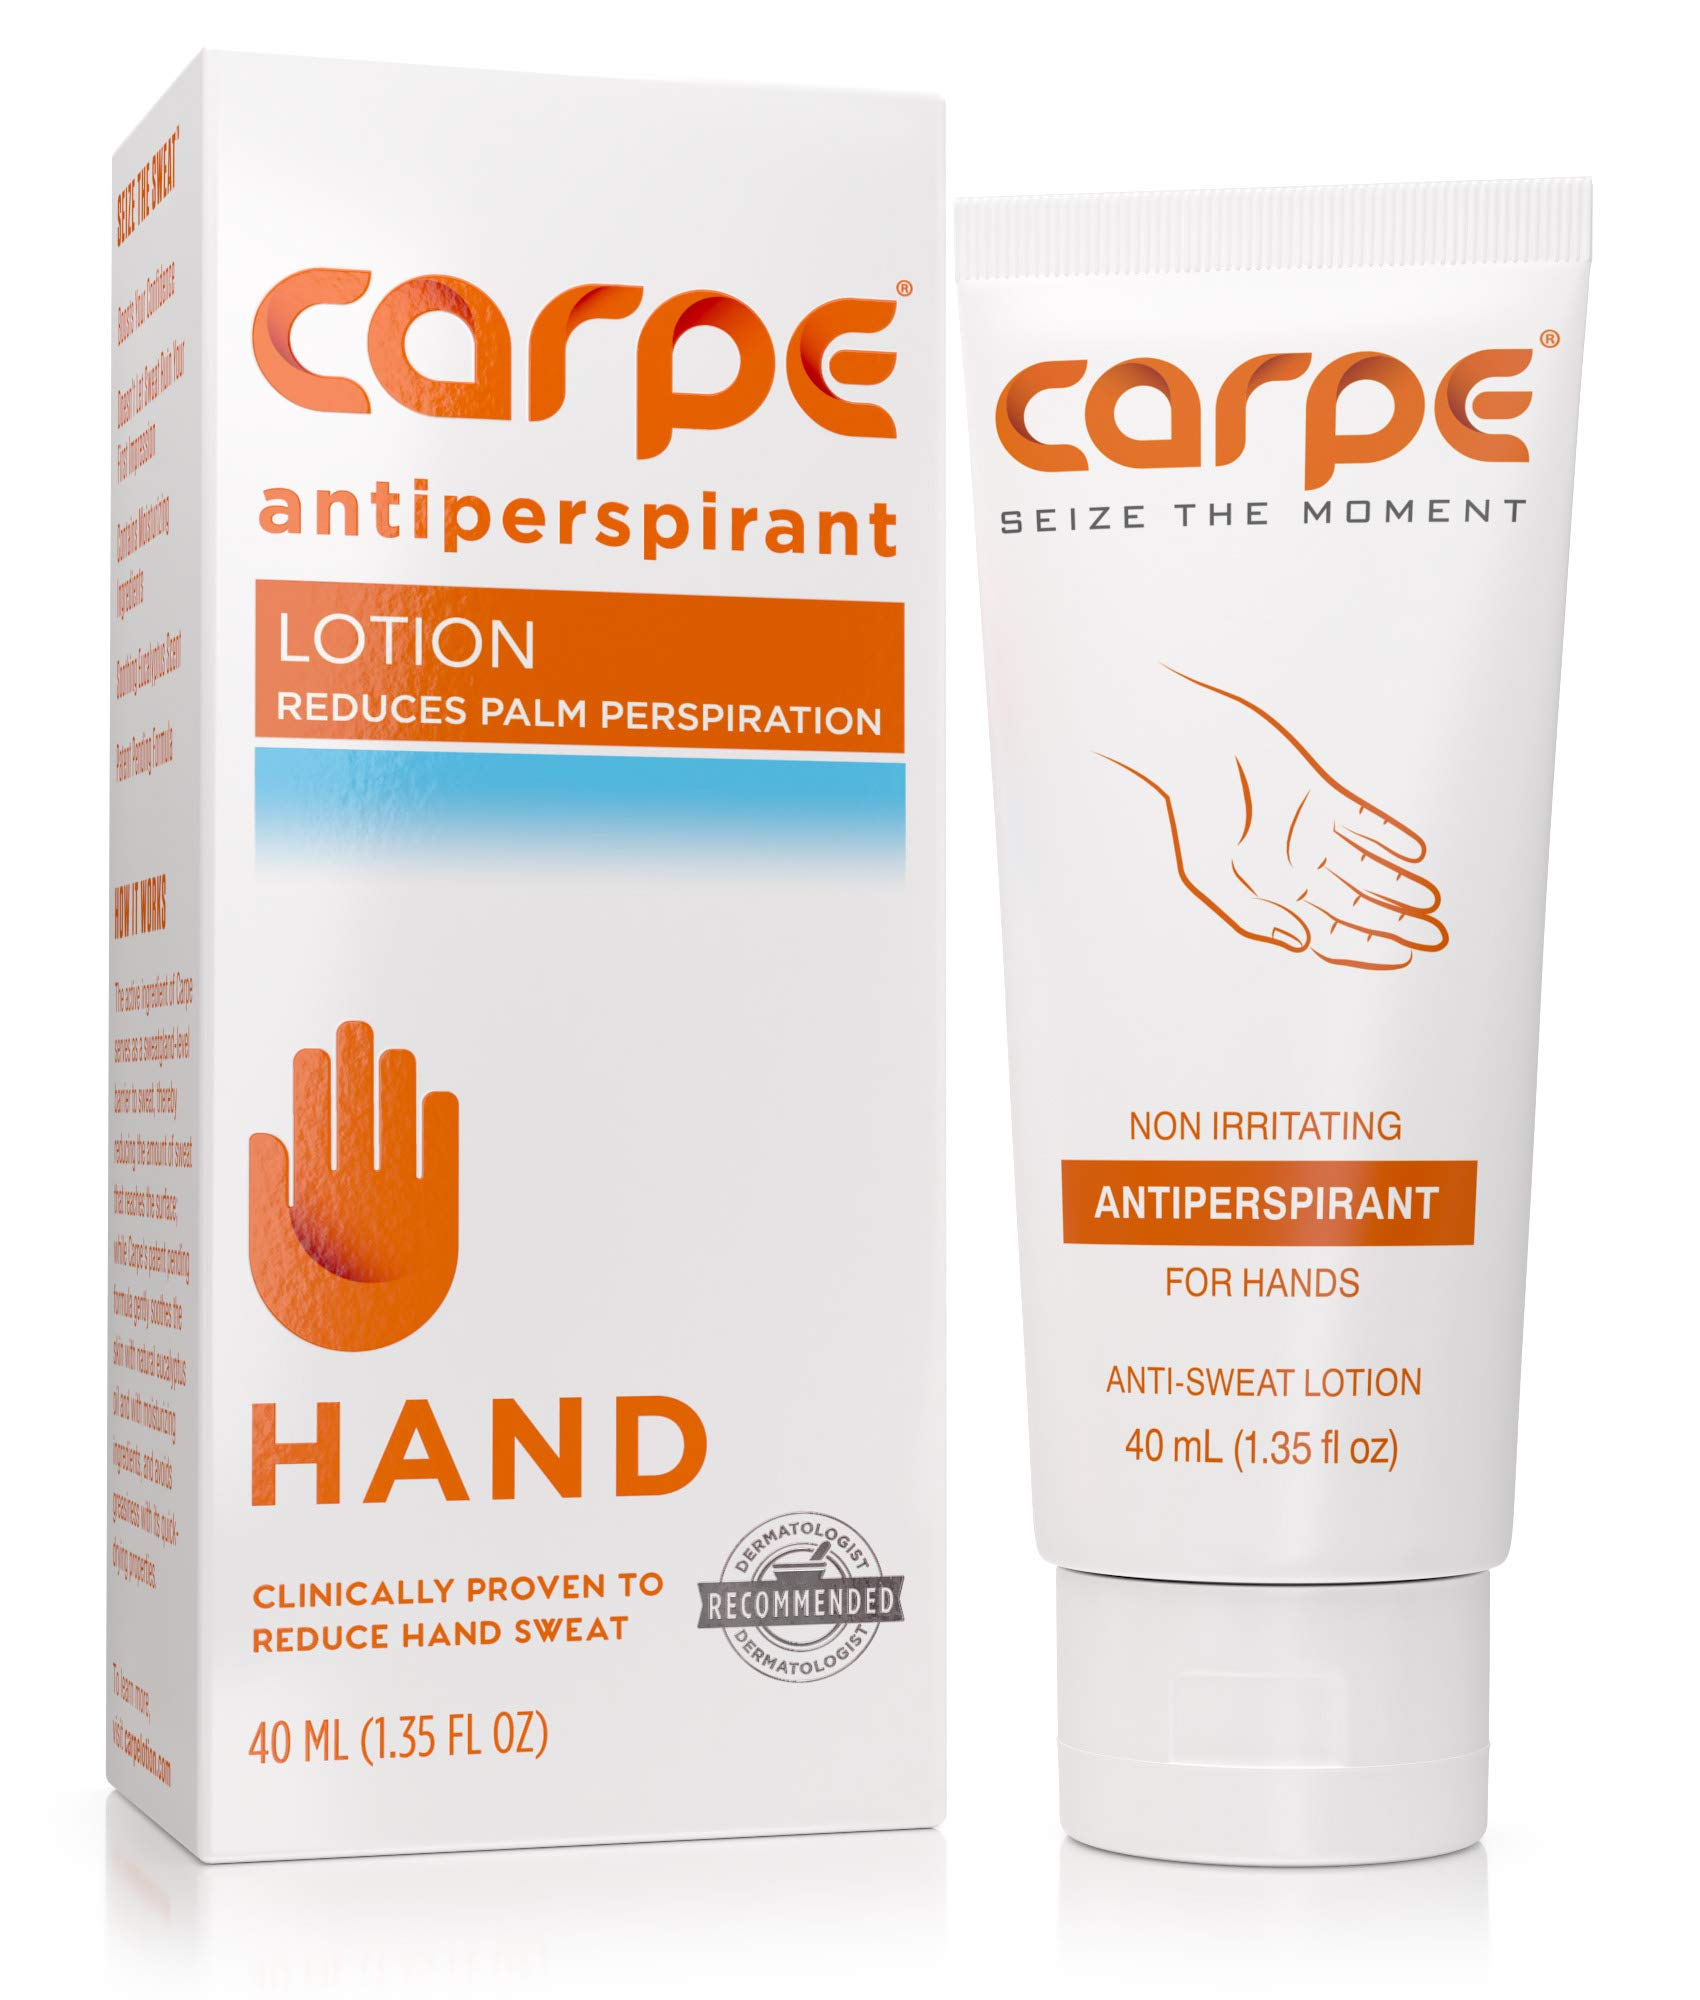 Carpe Antiperspirant Hand Lotion, A dermatologist-recommended, non-irritating, smooth lotion that helps stop hand sweat, great for hyperhidrosis or excessive sweat